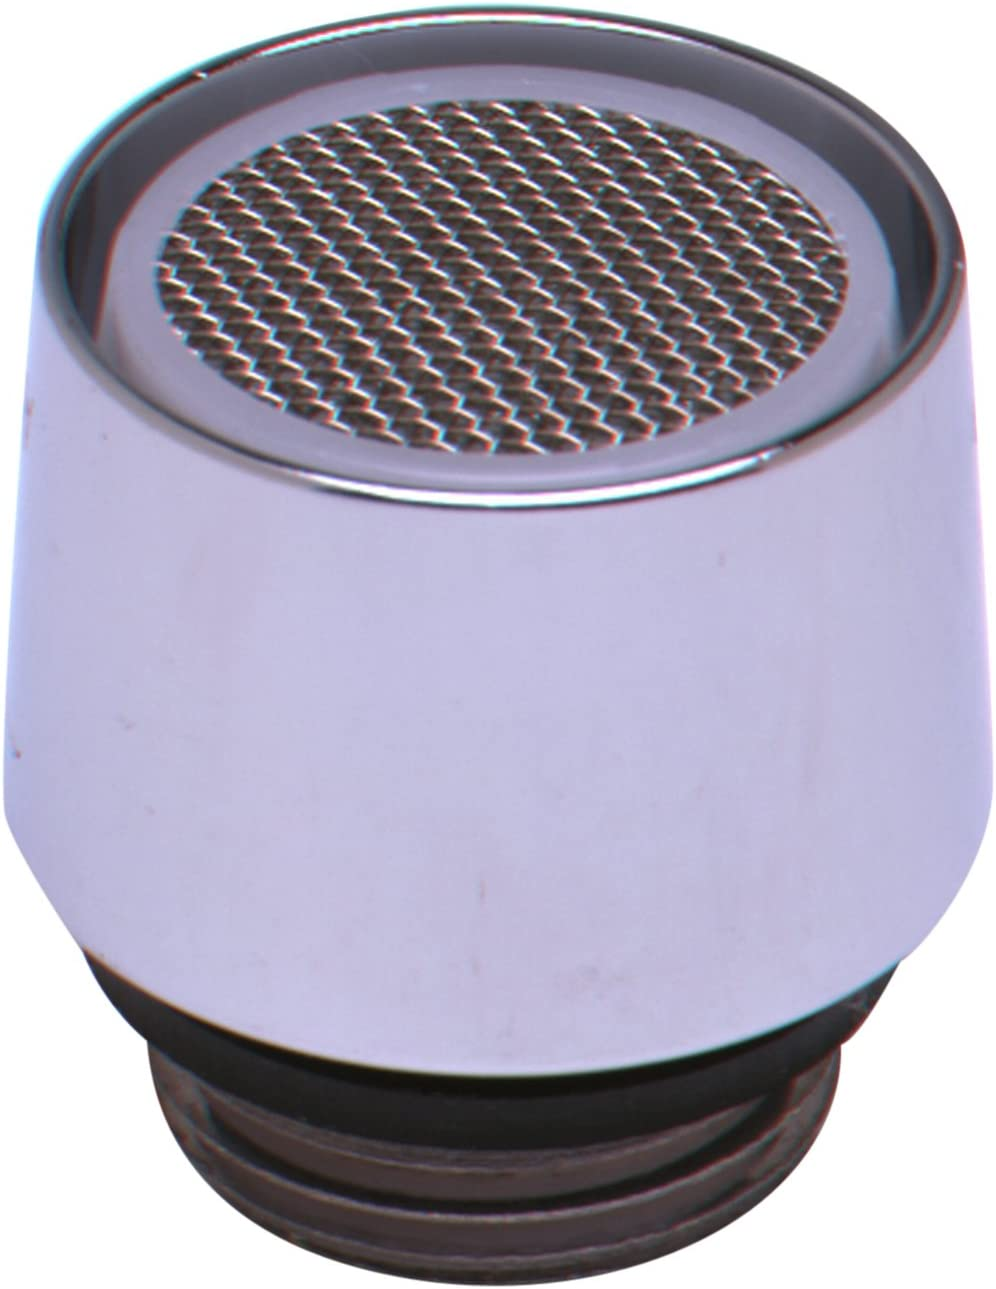 Inexpensive TS Brass Super special price BL-5550-01 Aerator 3 Ips Male 8-Inch